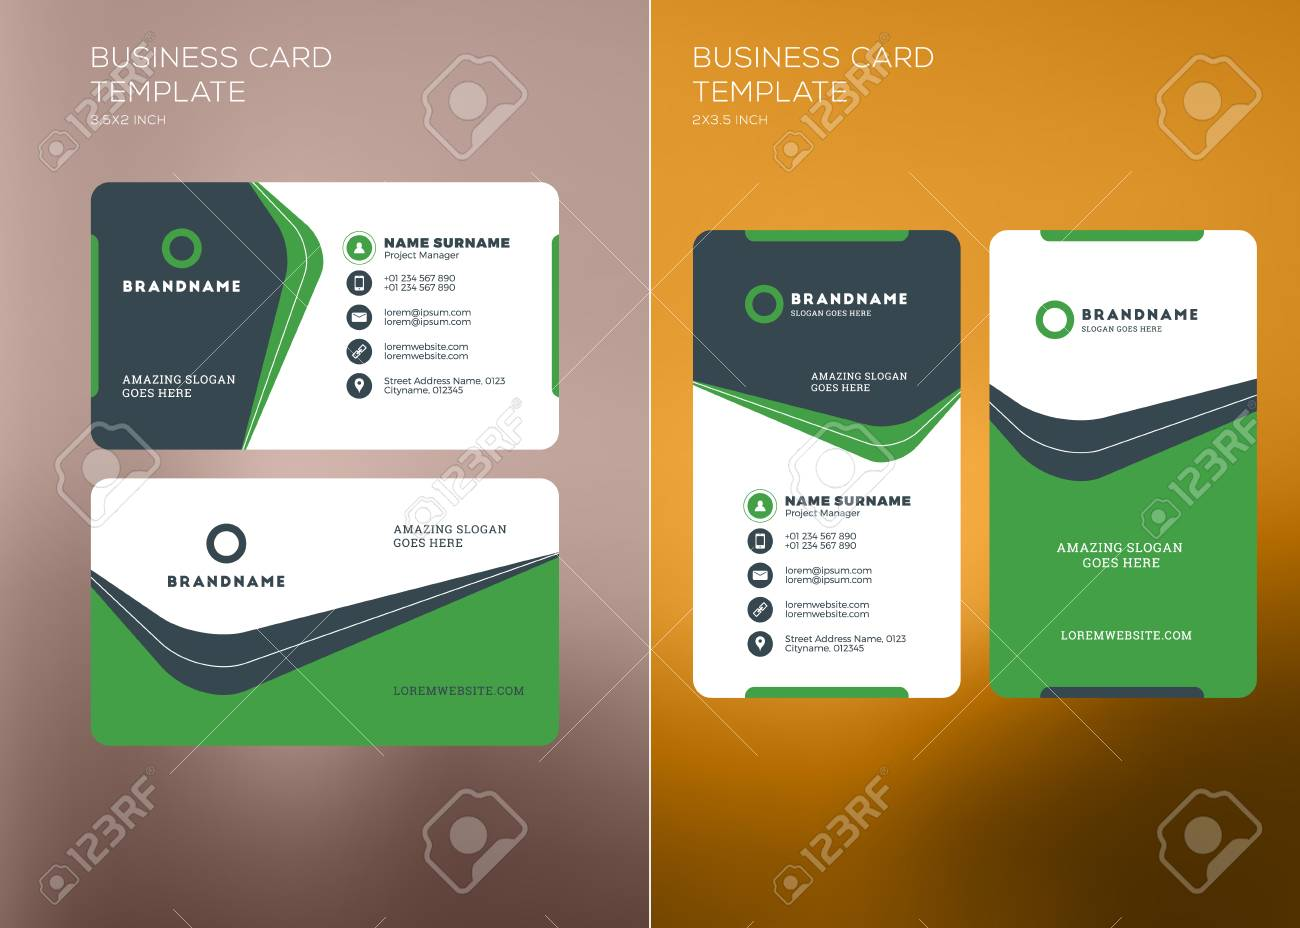 Corporate business card print template personal visiting card corporate business card print template personal visiting card with company logo vertical and horizontal accmission